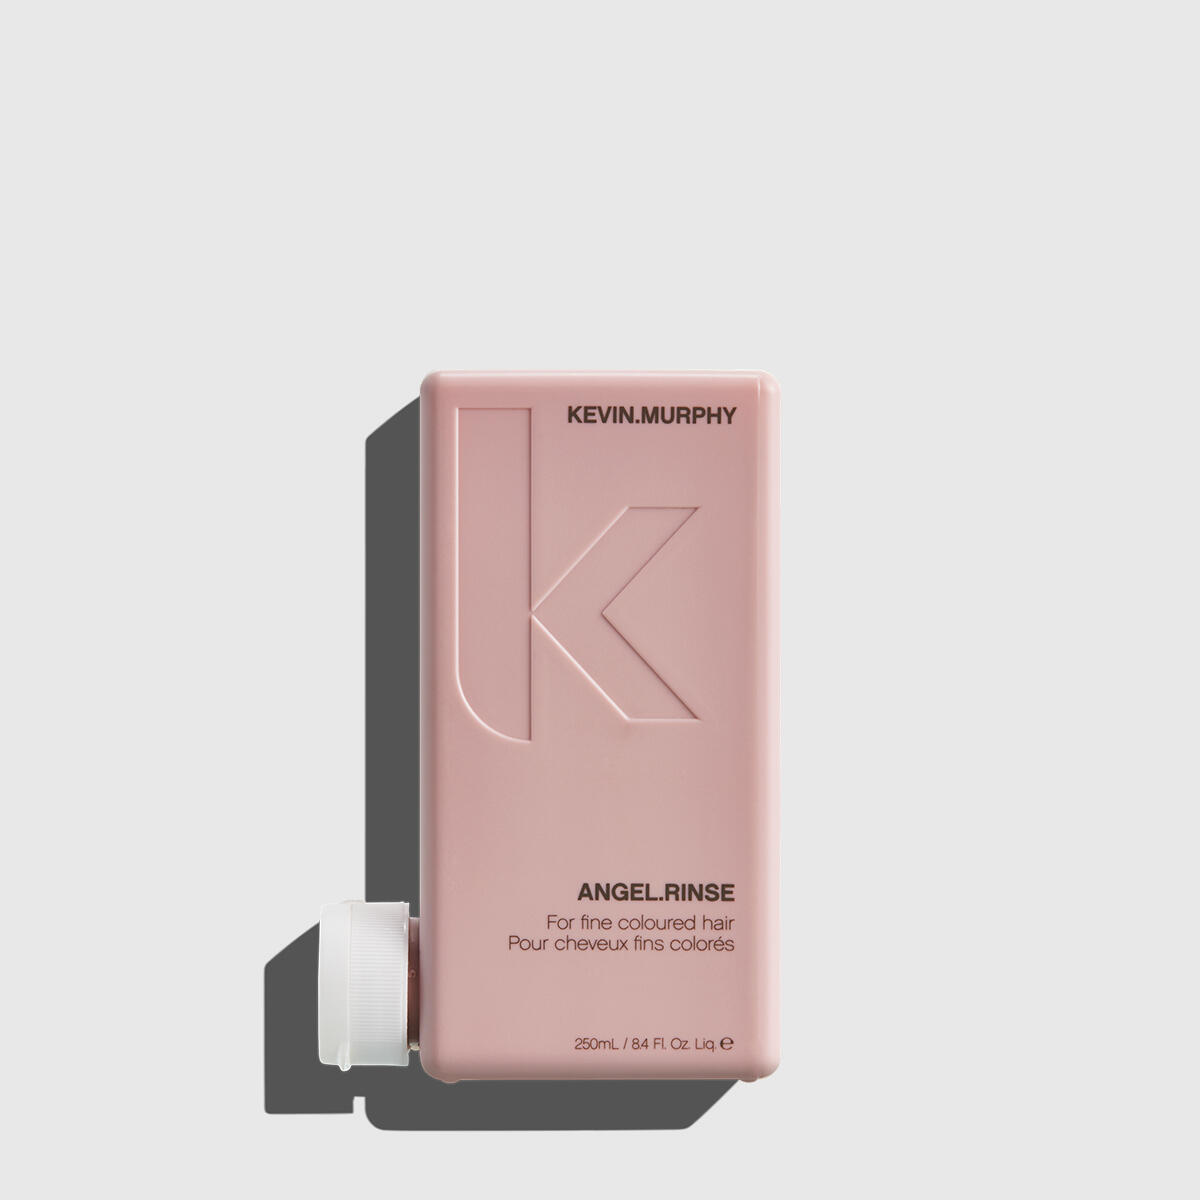 Kevin Murphy Angel Rinse null